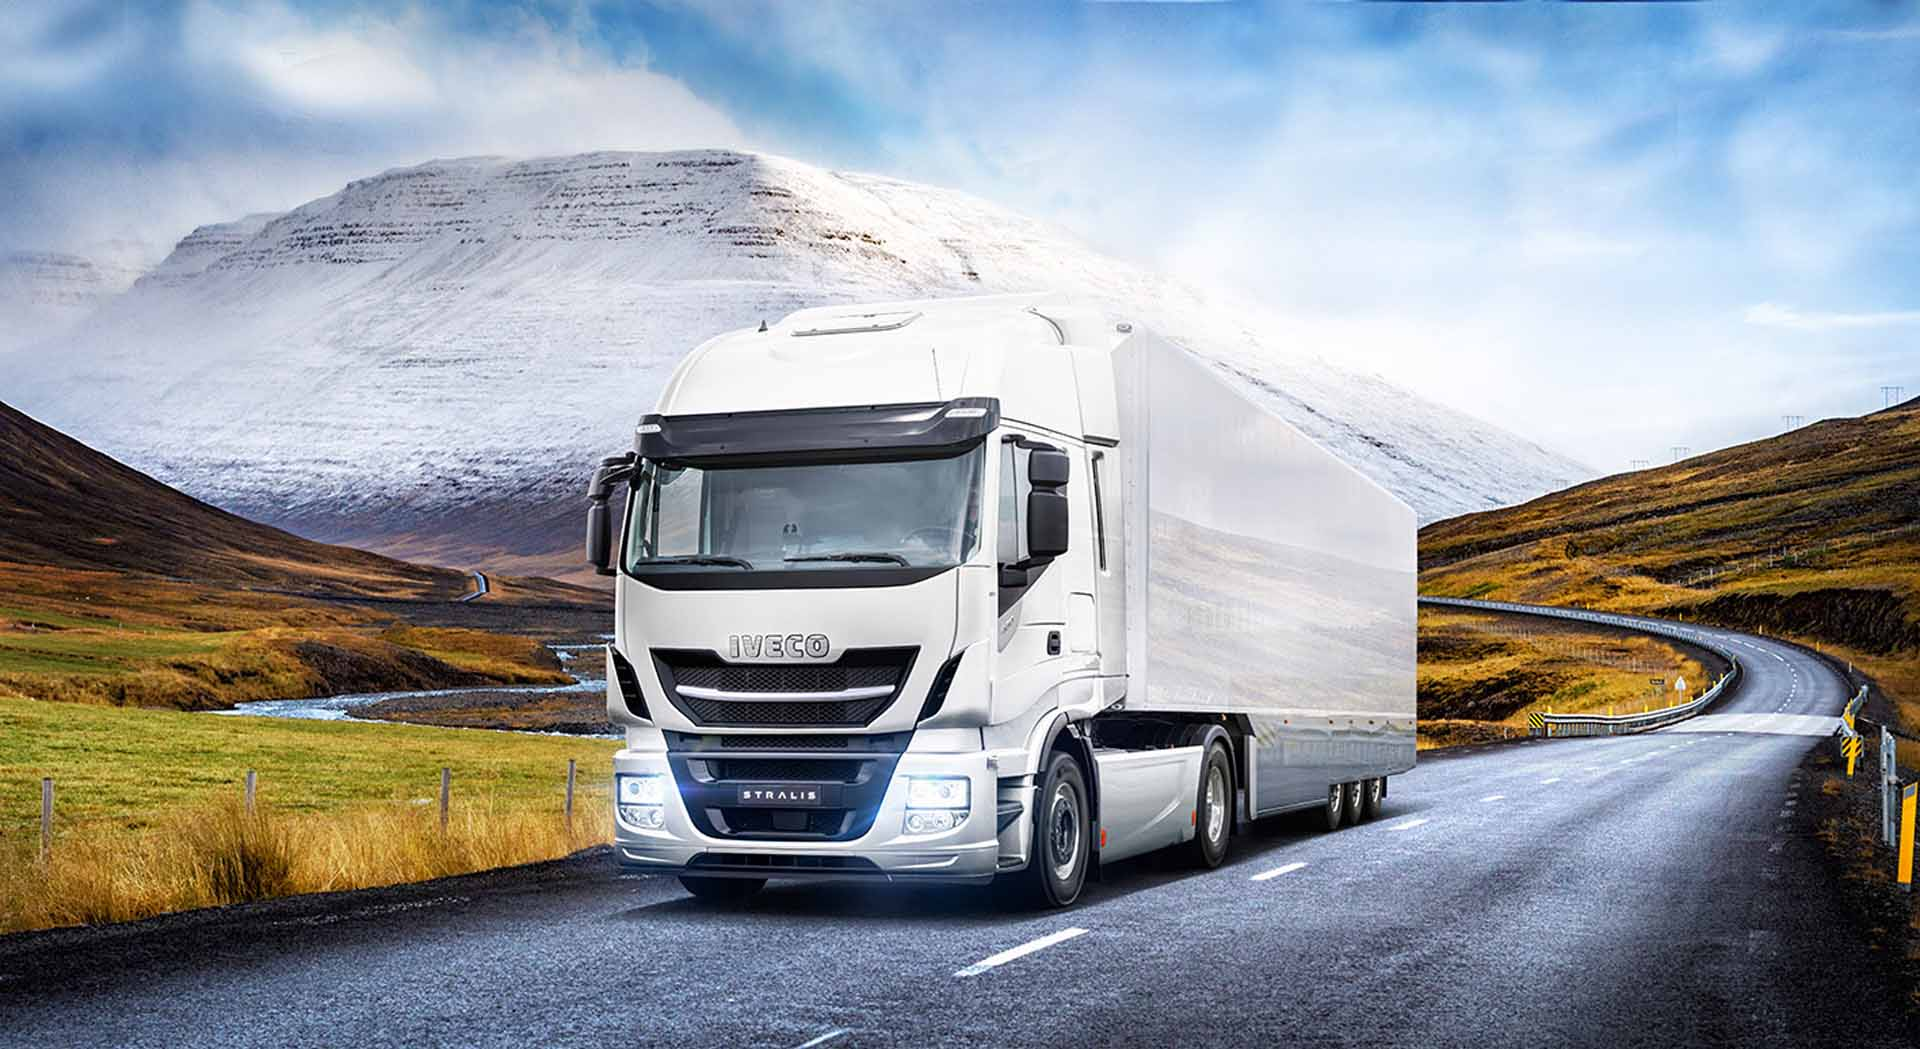 iveco-new-stralis-xp-white_27818426476_o